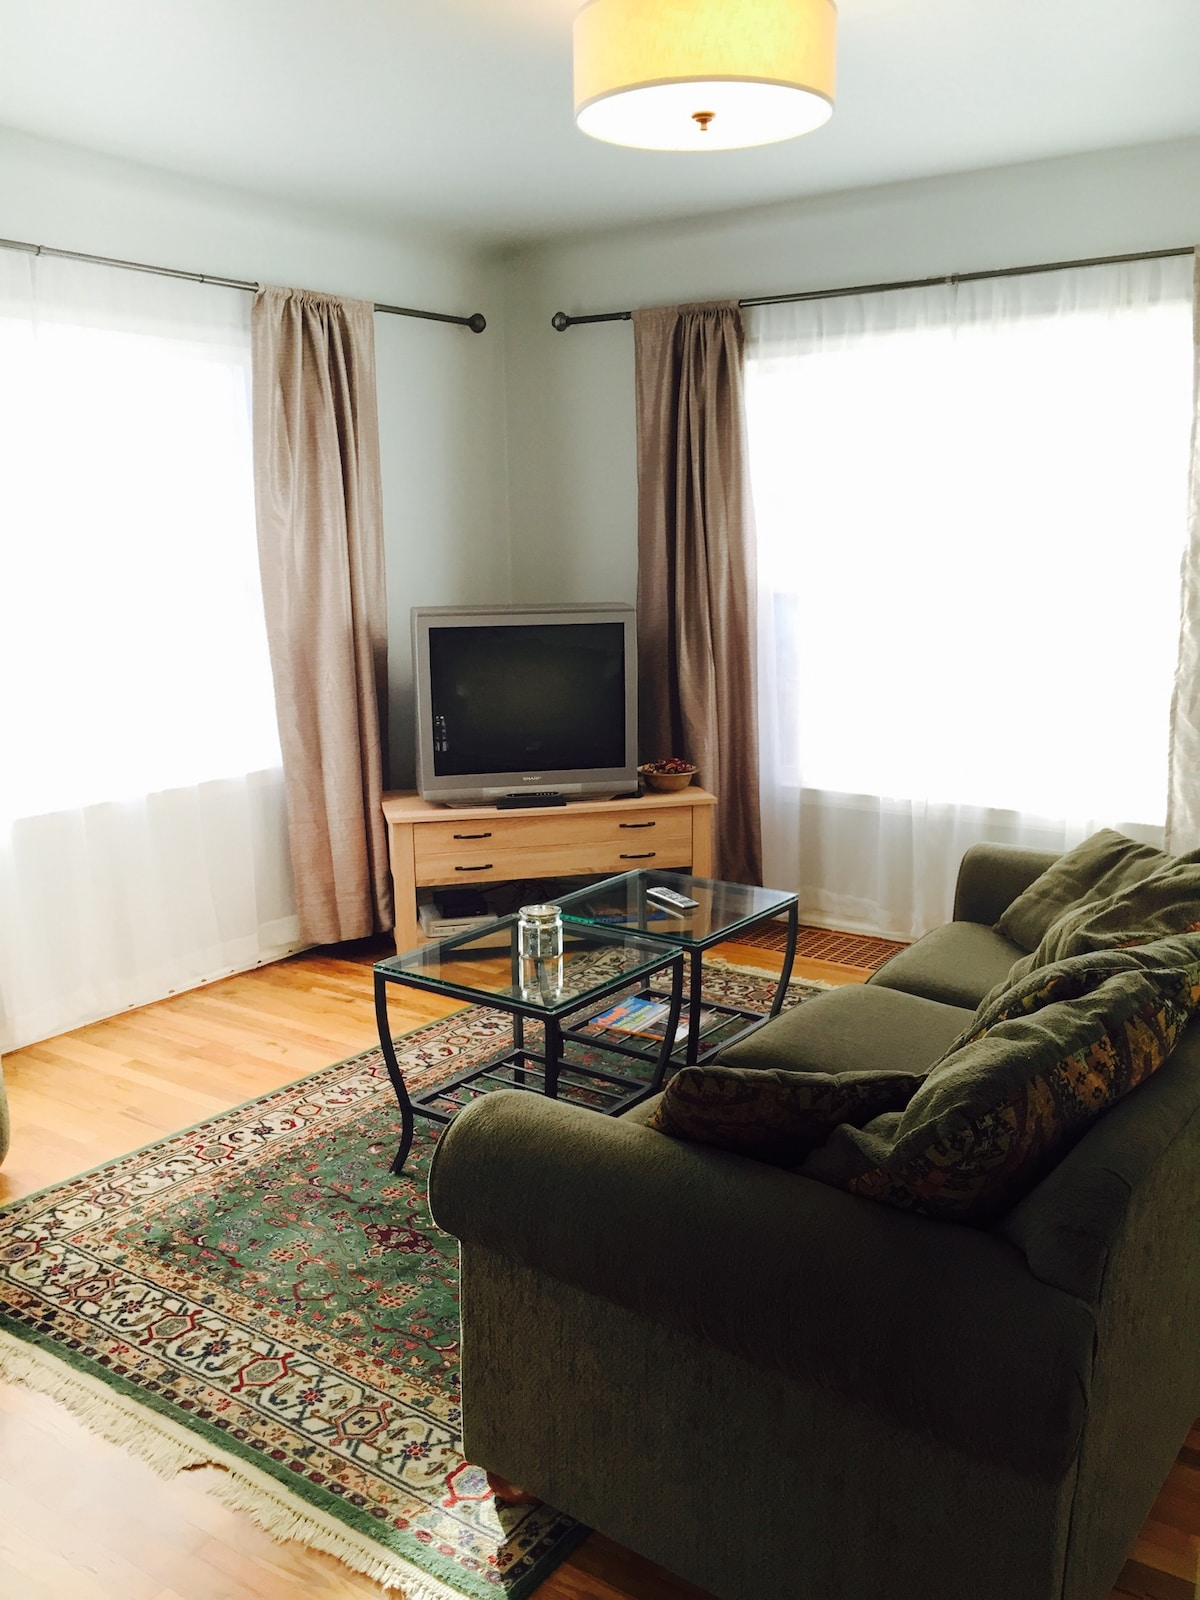 Bright livingroom with a place to kick your feet up, relax and watch some t.v. or play some Wii. Enjoy!